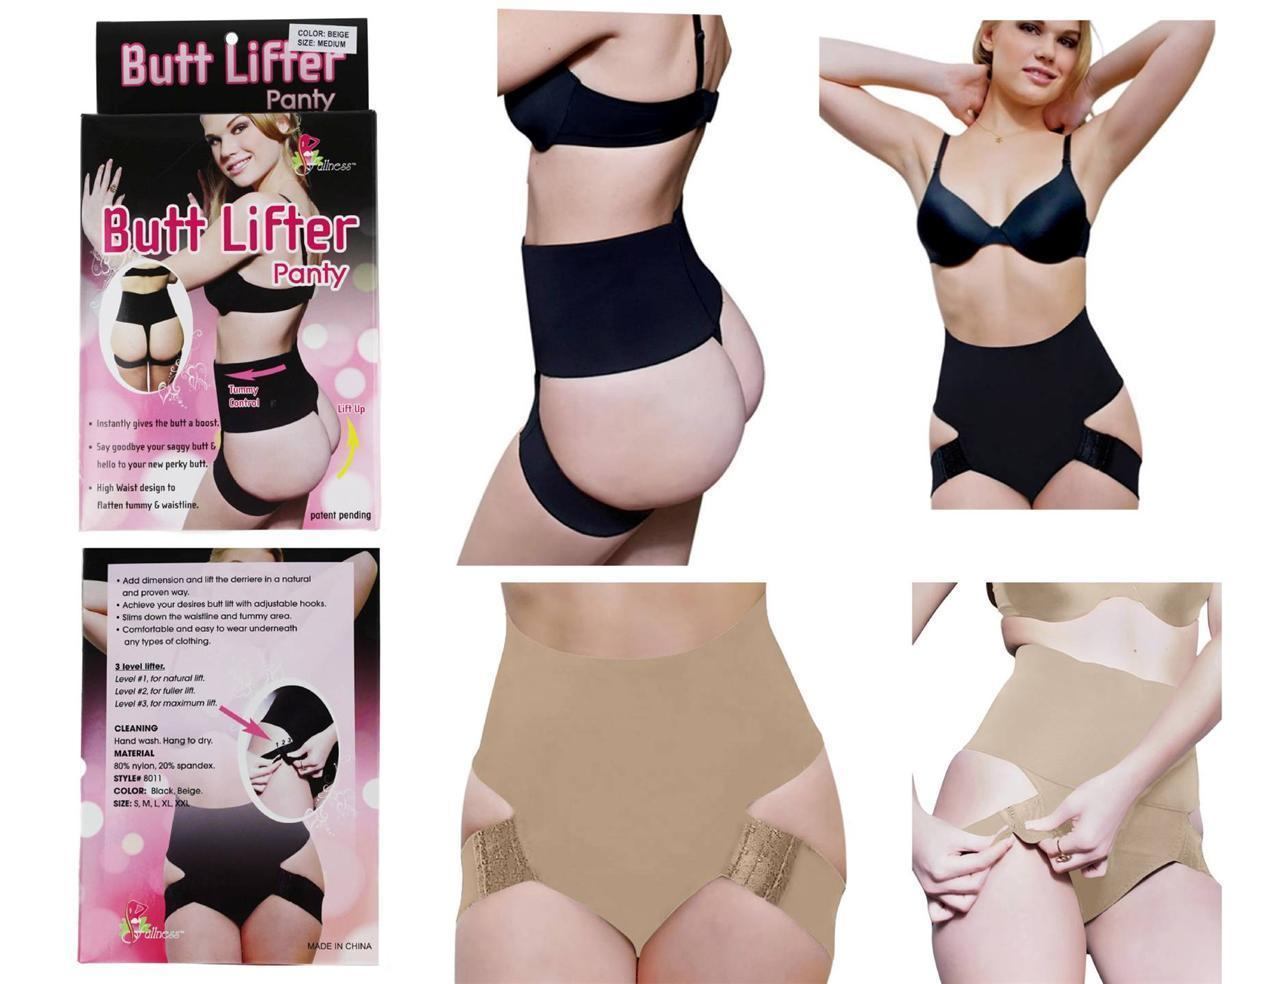 LOT OF 2 NEW WOMEN'S FULLNESS BUTT LIFTER TUMMY CONTROL SHAPER PANTY #8011